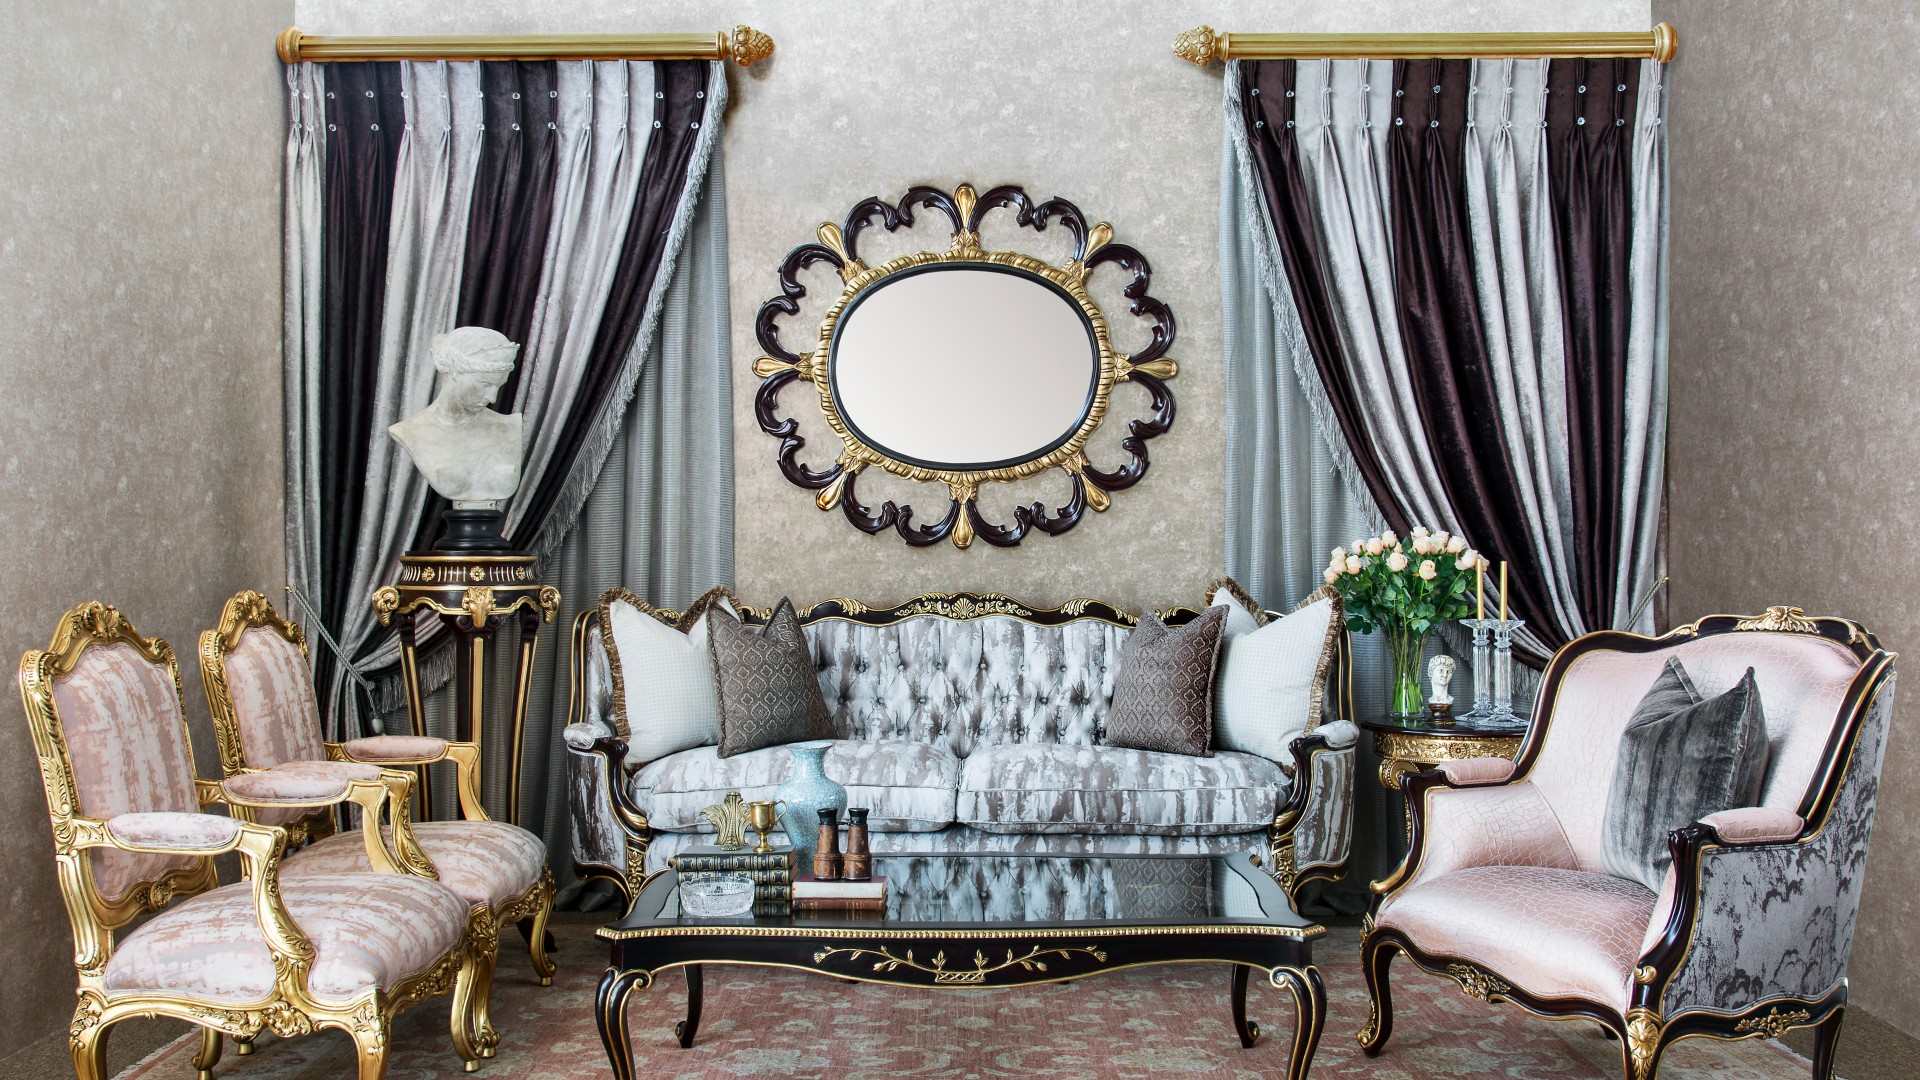 Luxury furniture trends from around the world